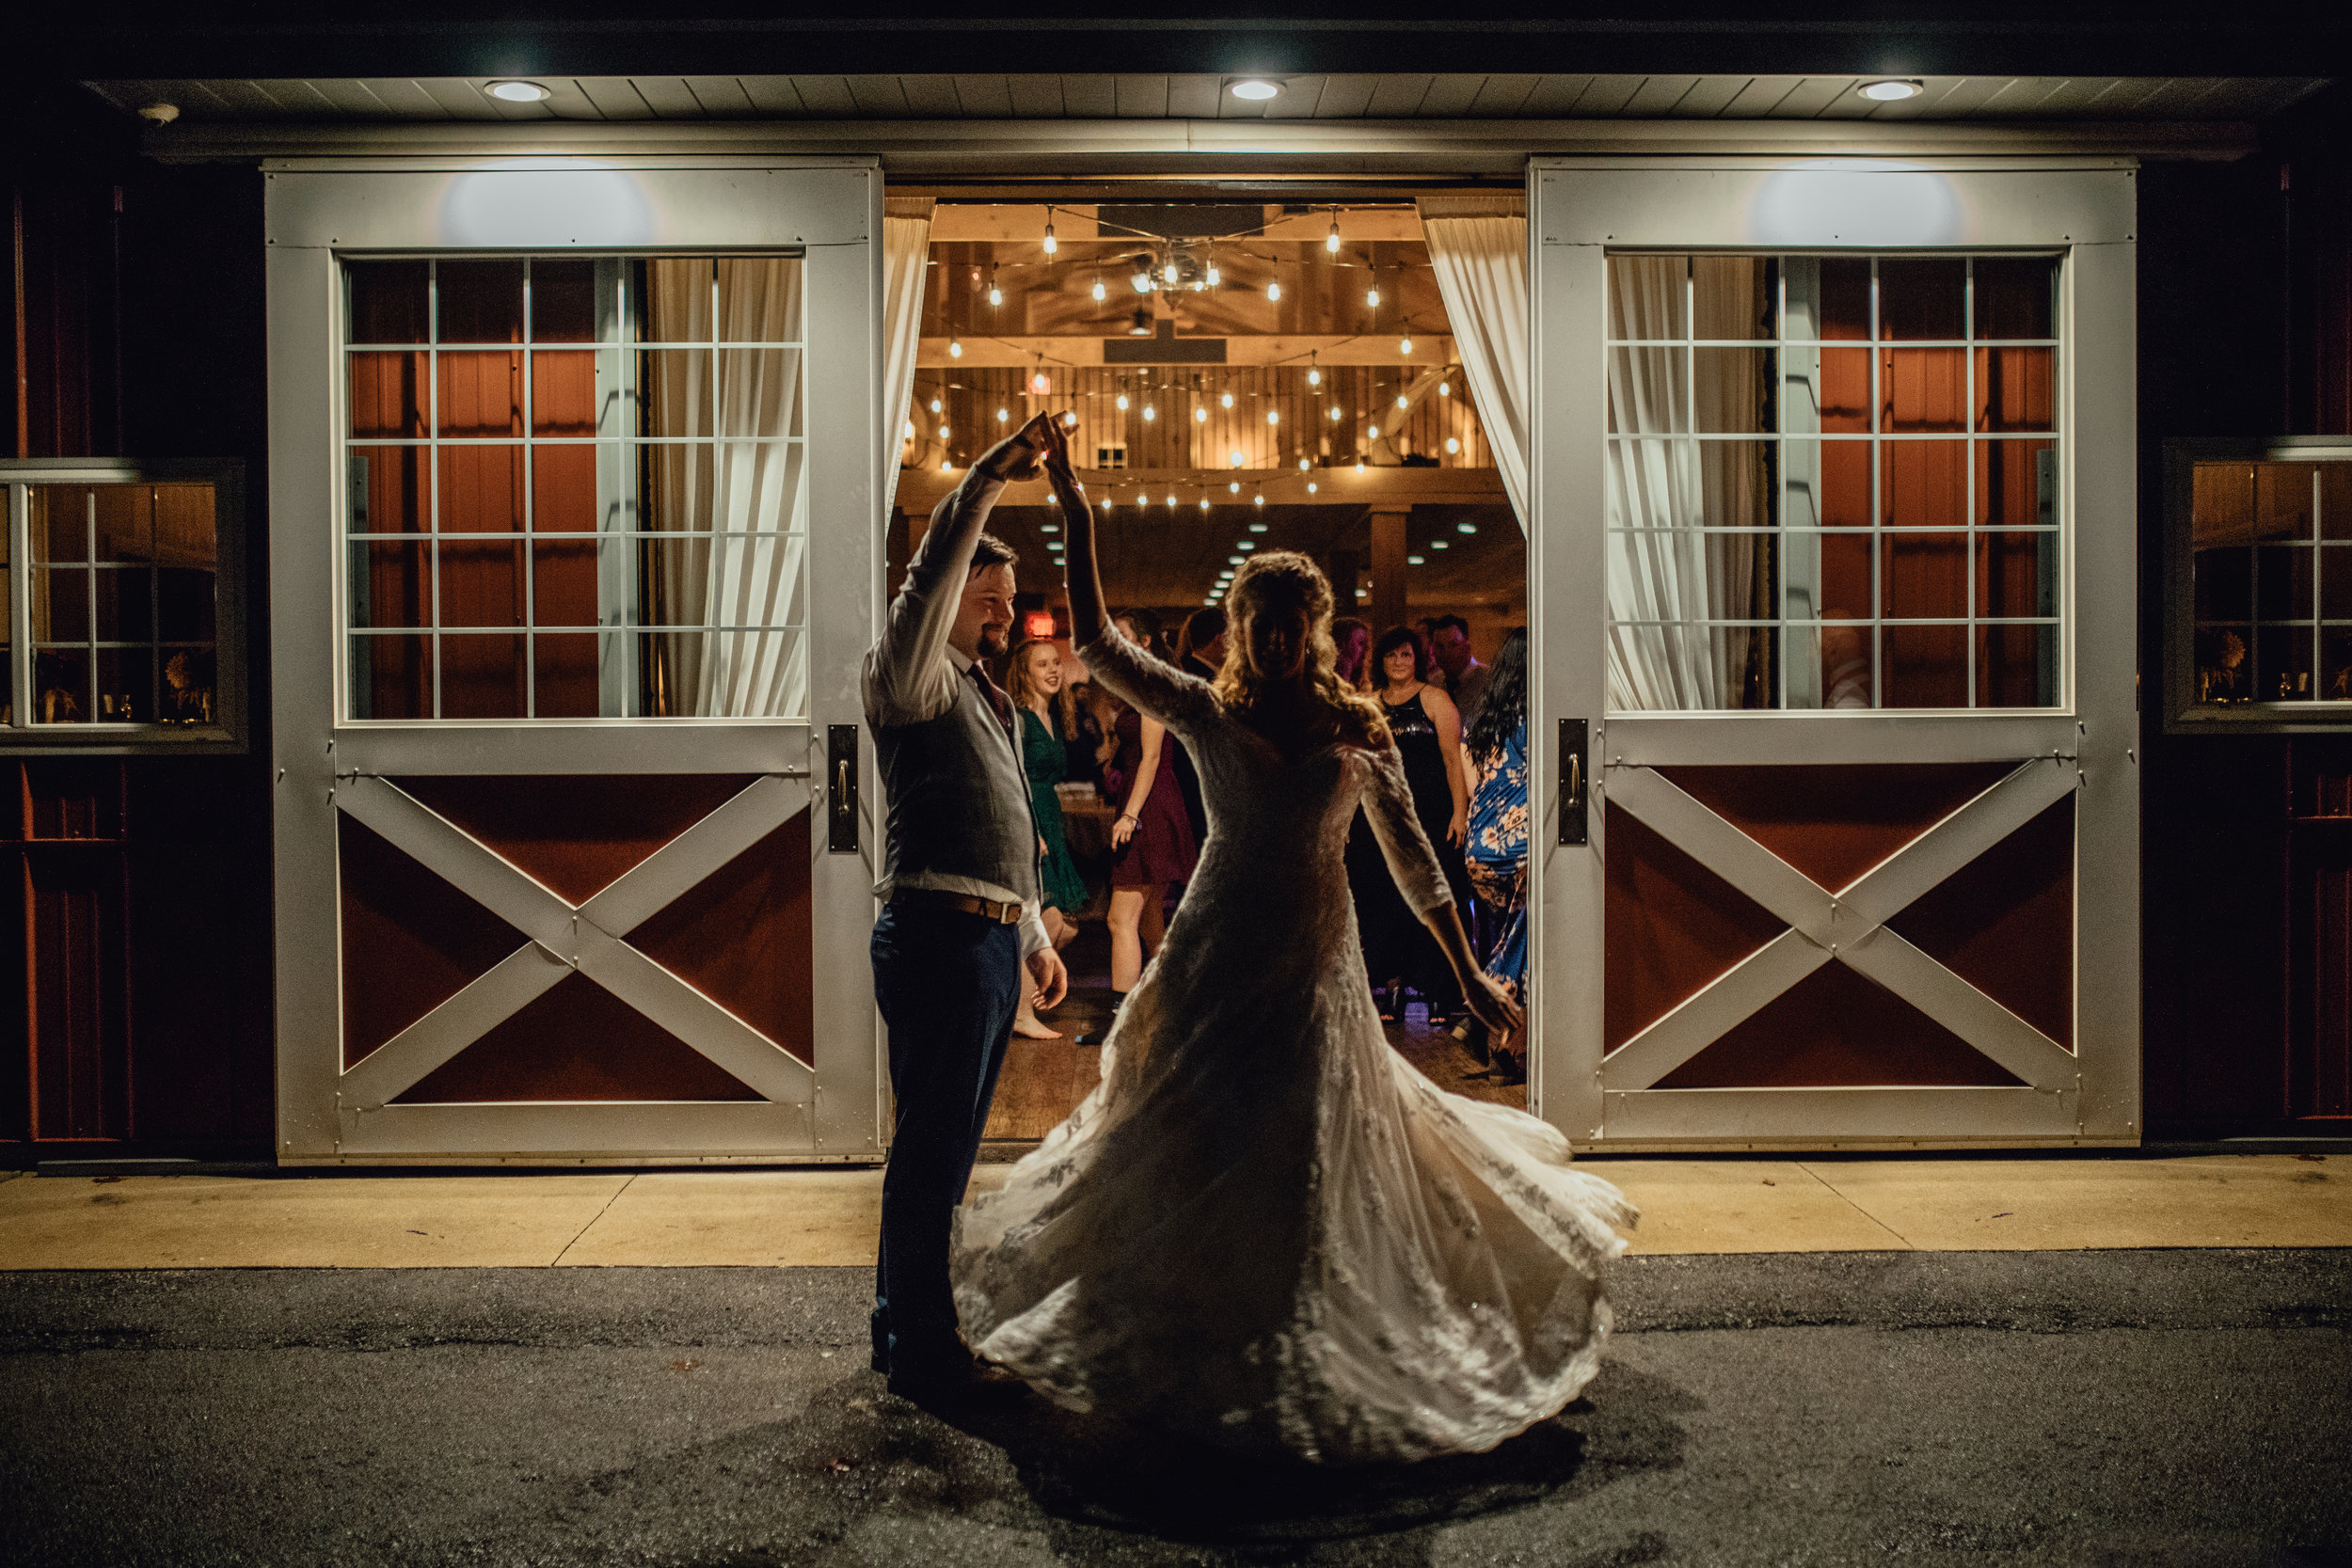 bride-and-groom-dancing-outside-barn-at-night-rustic-manor-1848.jpg